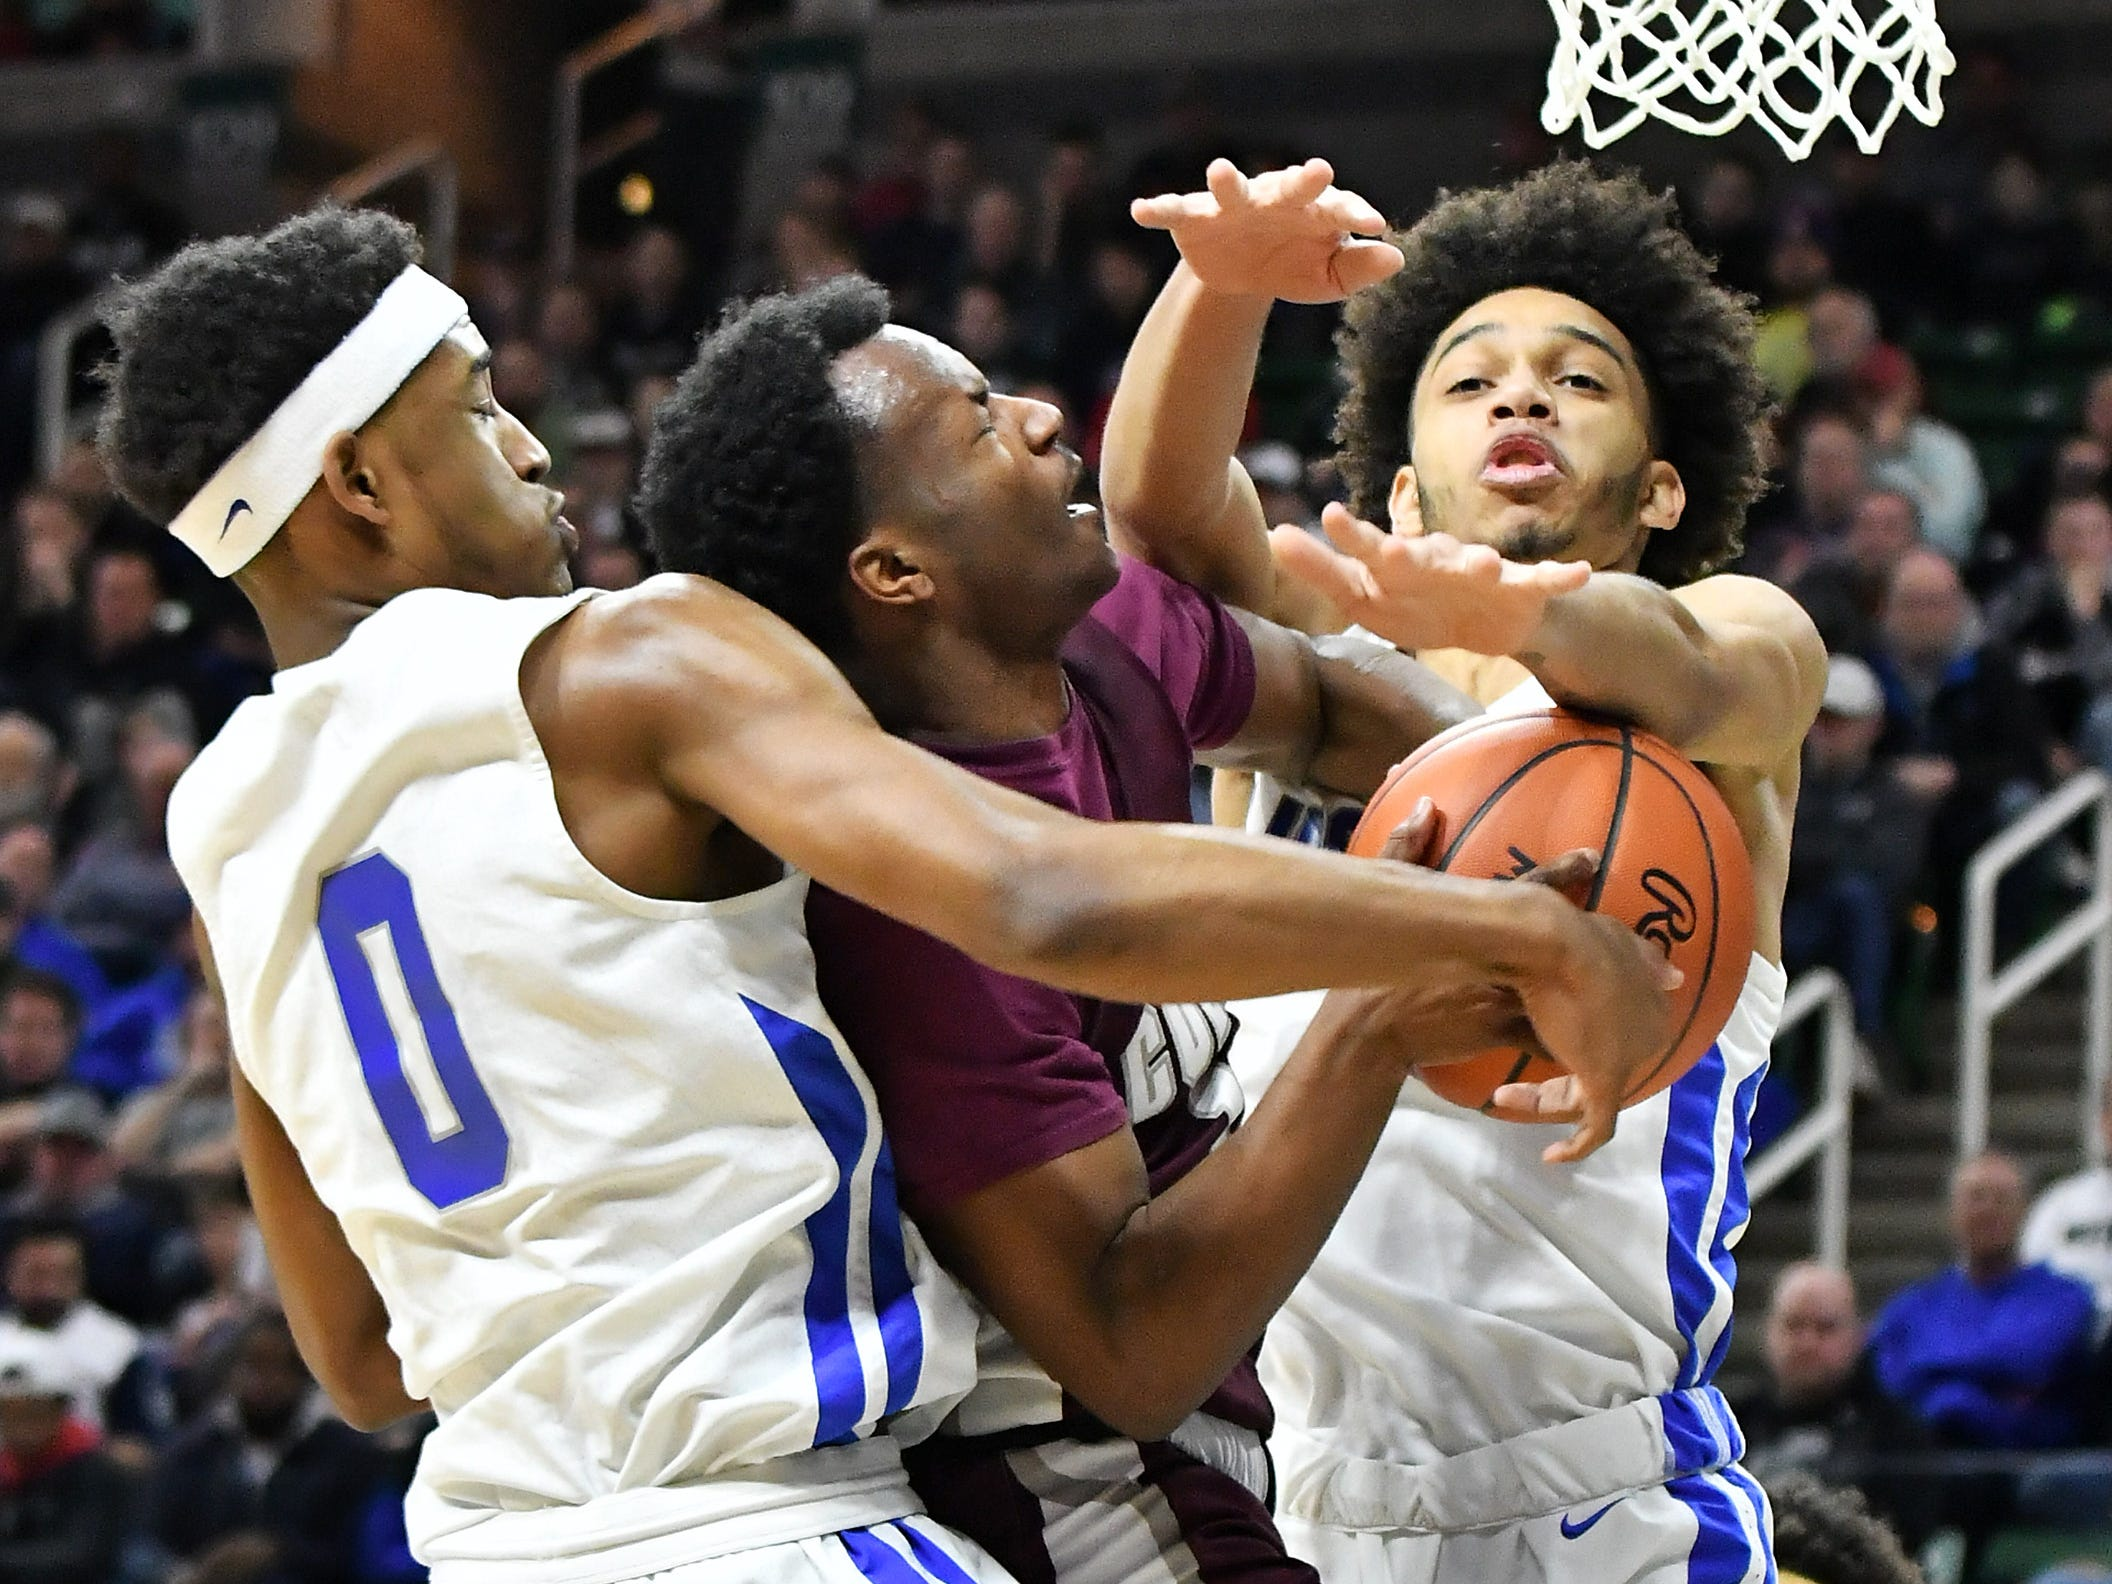 Lincoln guard Tahj Chatman (0) and Lincoln guard Amari Frye (4) converge on U-D Jesuit's Julian Dozier (1) in the second half.